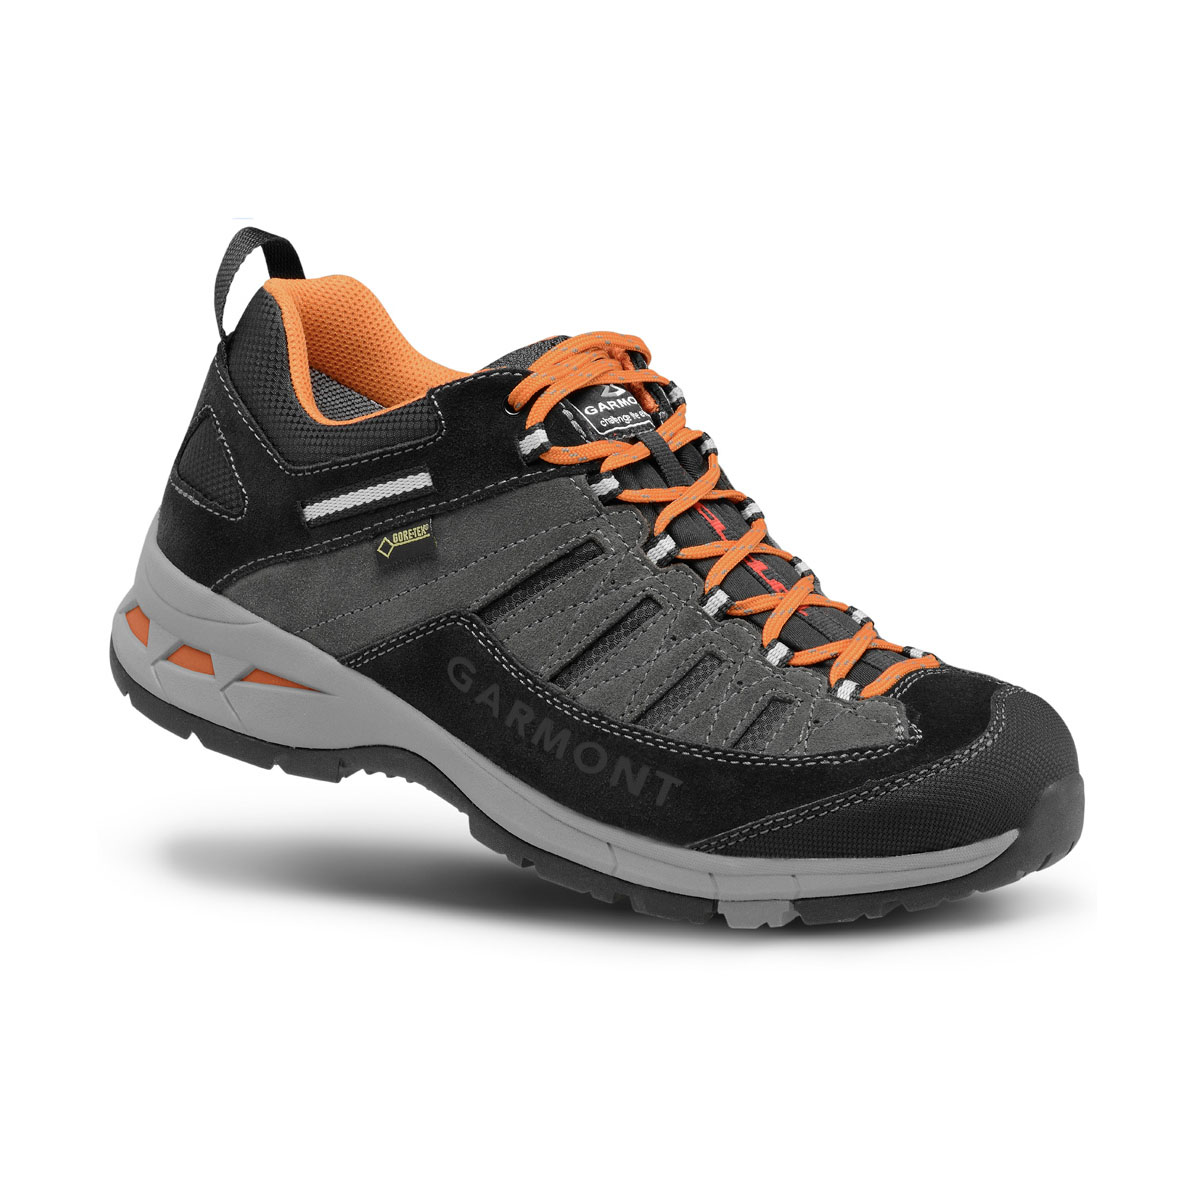 Garmont Men's Trail Beast GTX